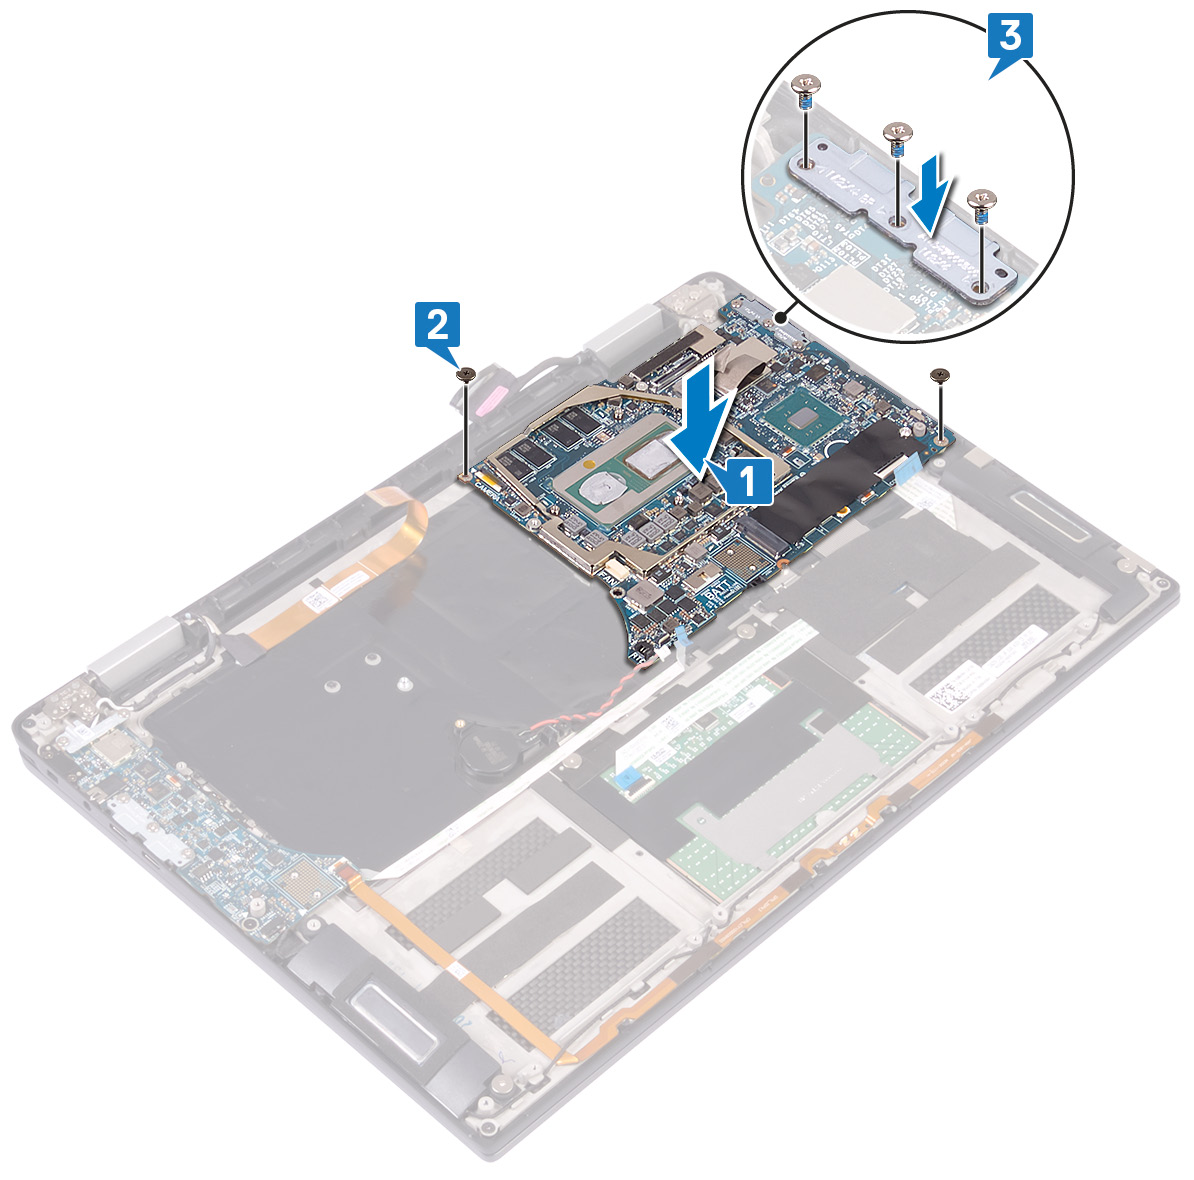 Image: Replacing the system board